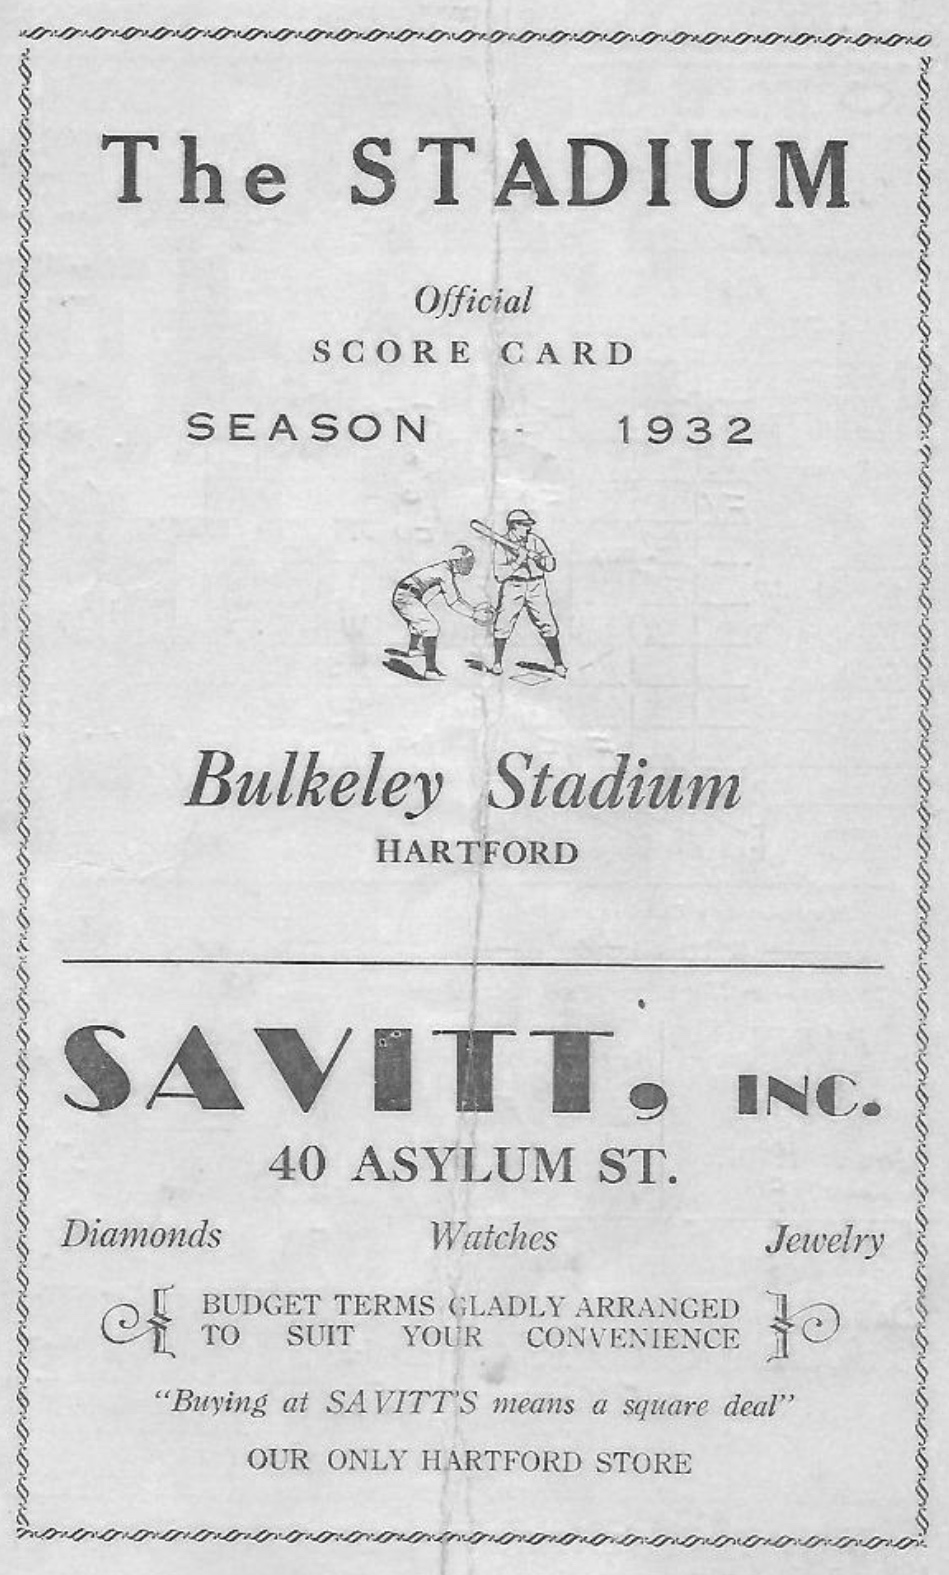 Bulkeley Stadium score card, 1932.